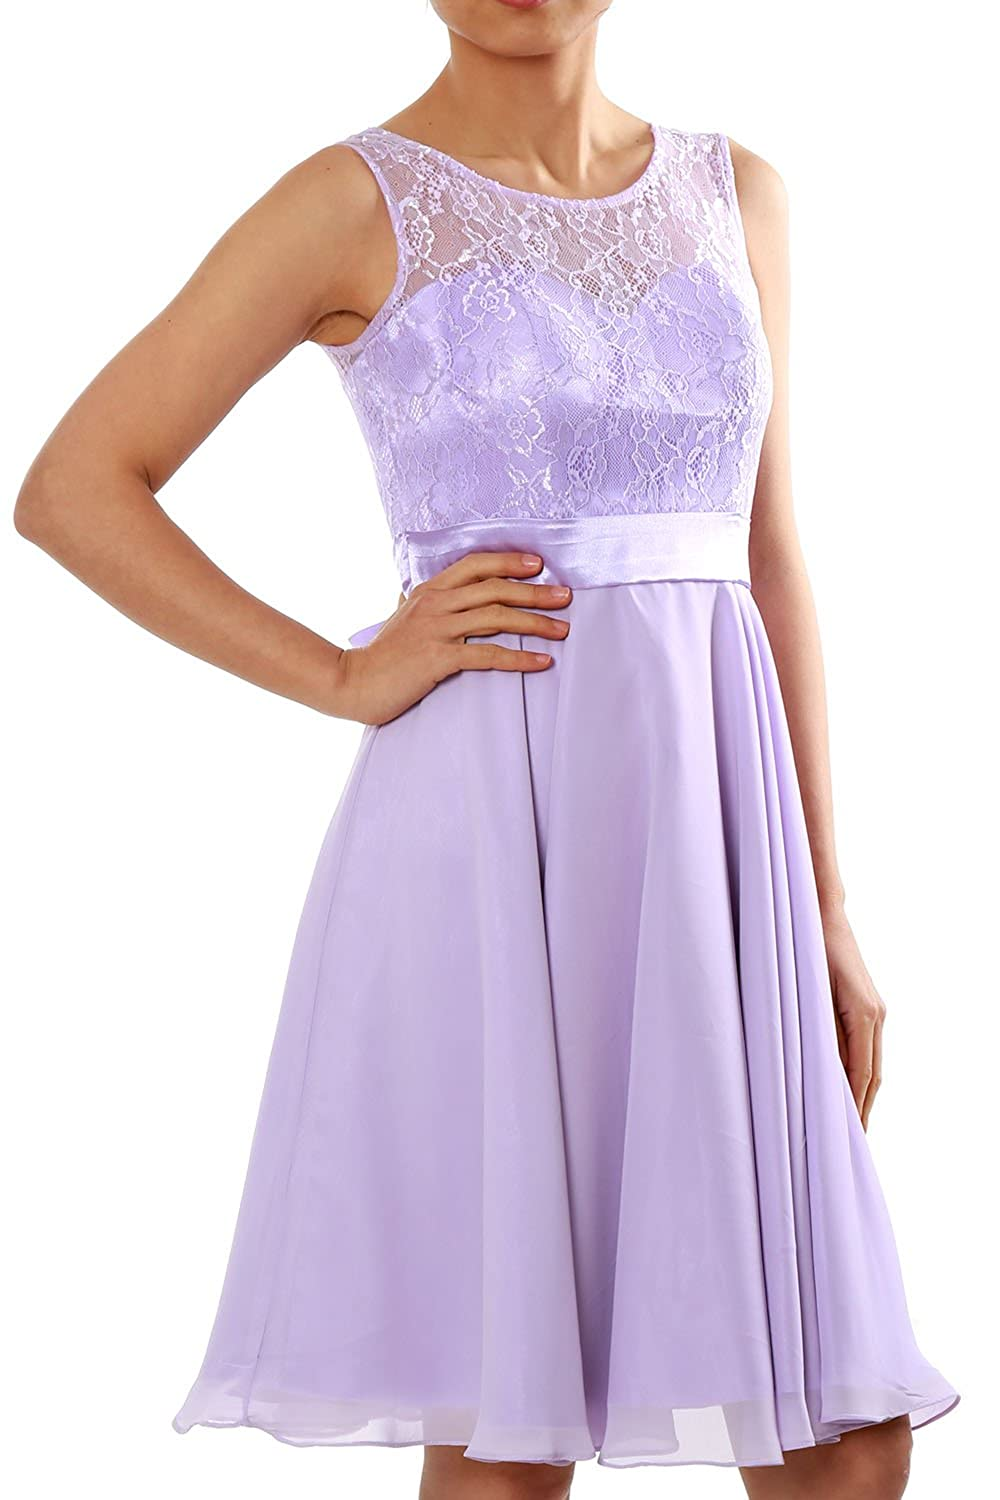 MACloth Women Short Lace Chiffon Bridesmaid Dress Cocktail Party Formal Gown